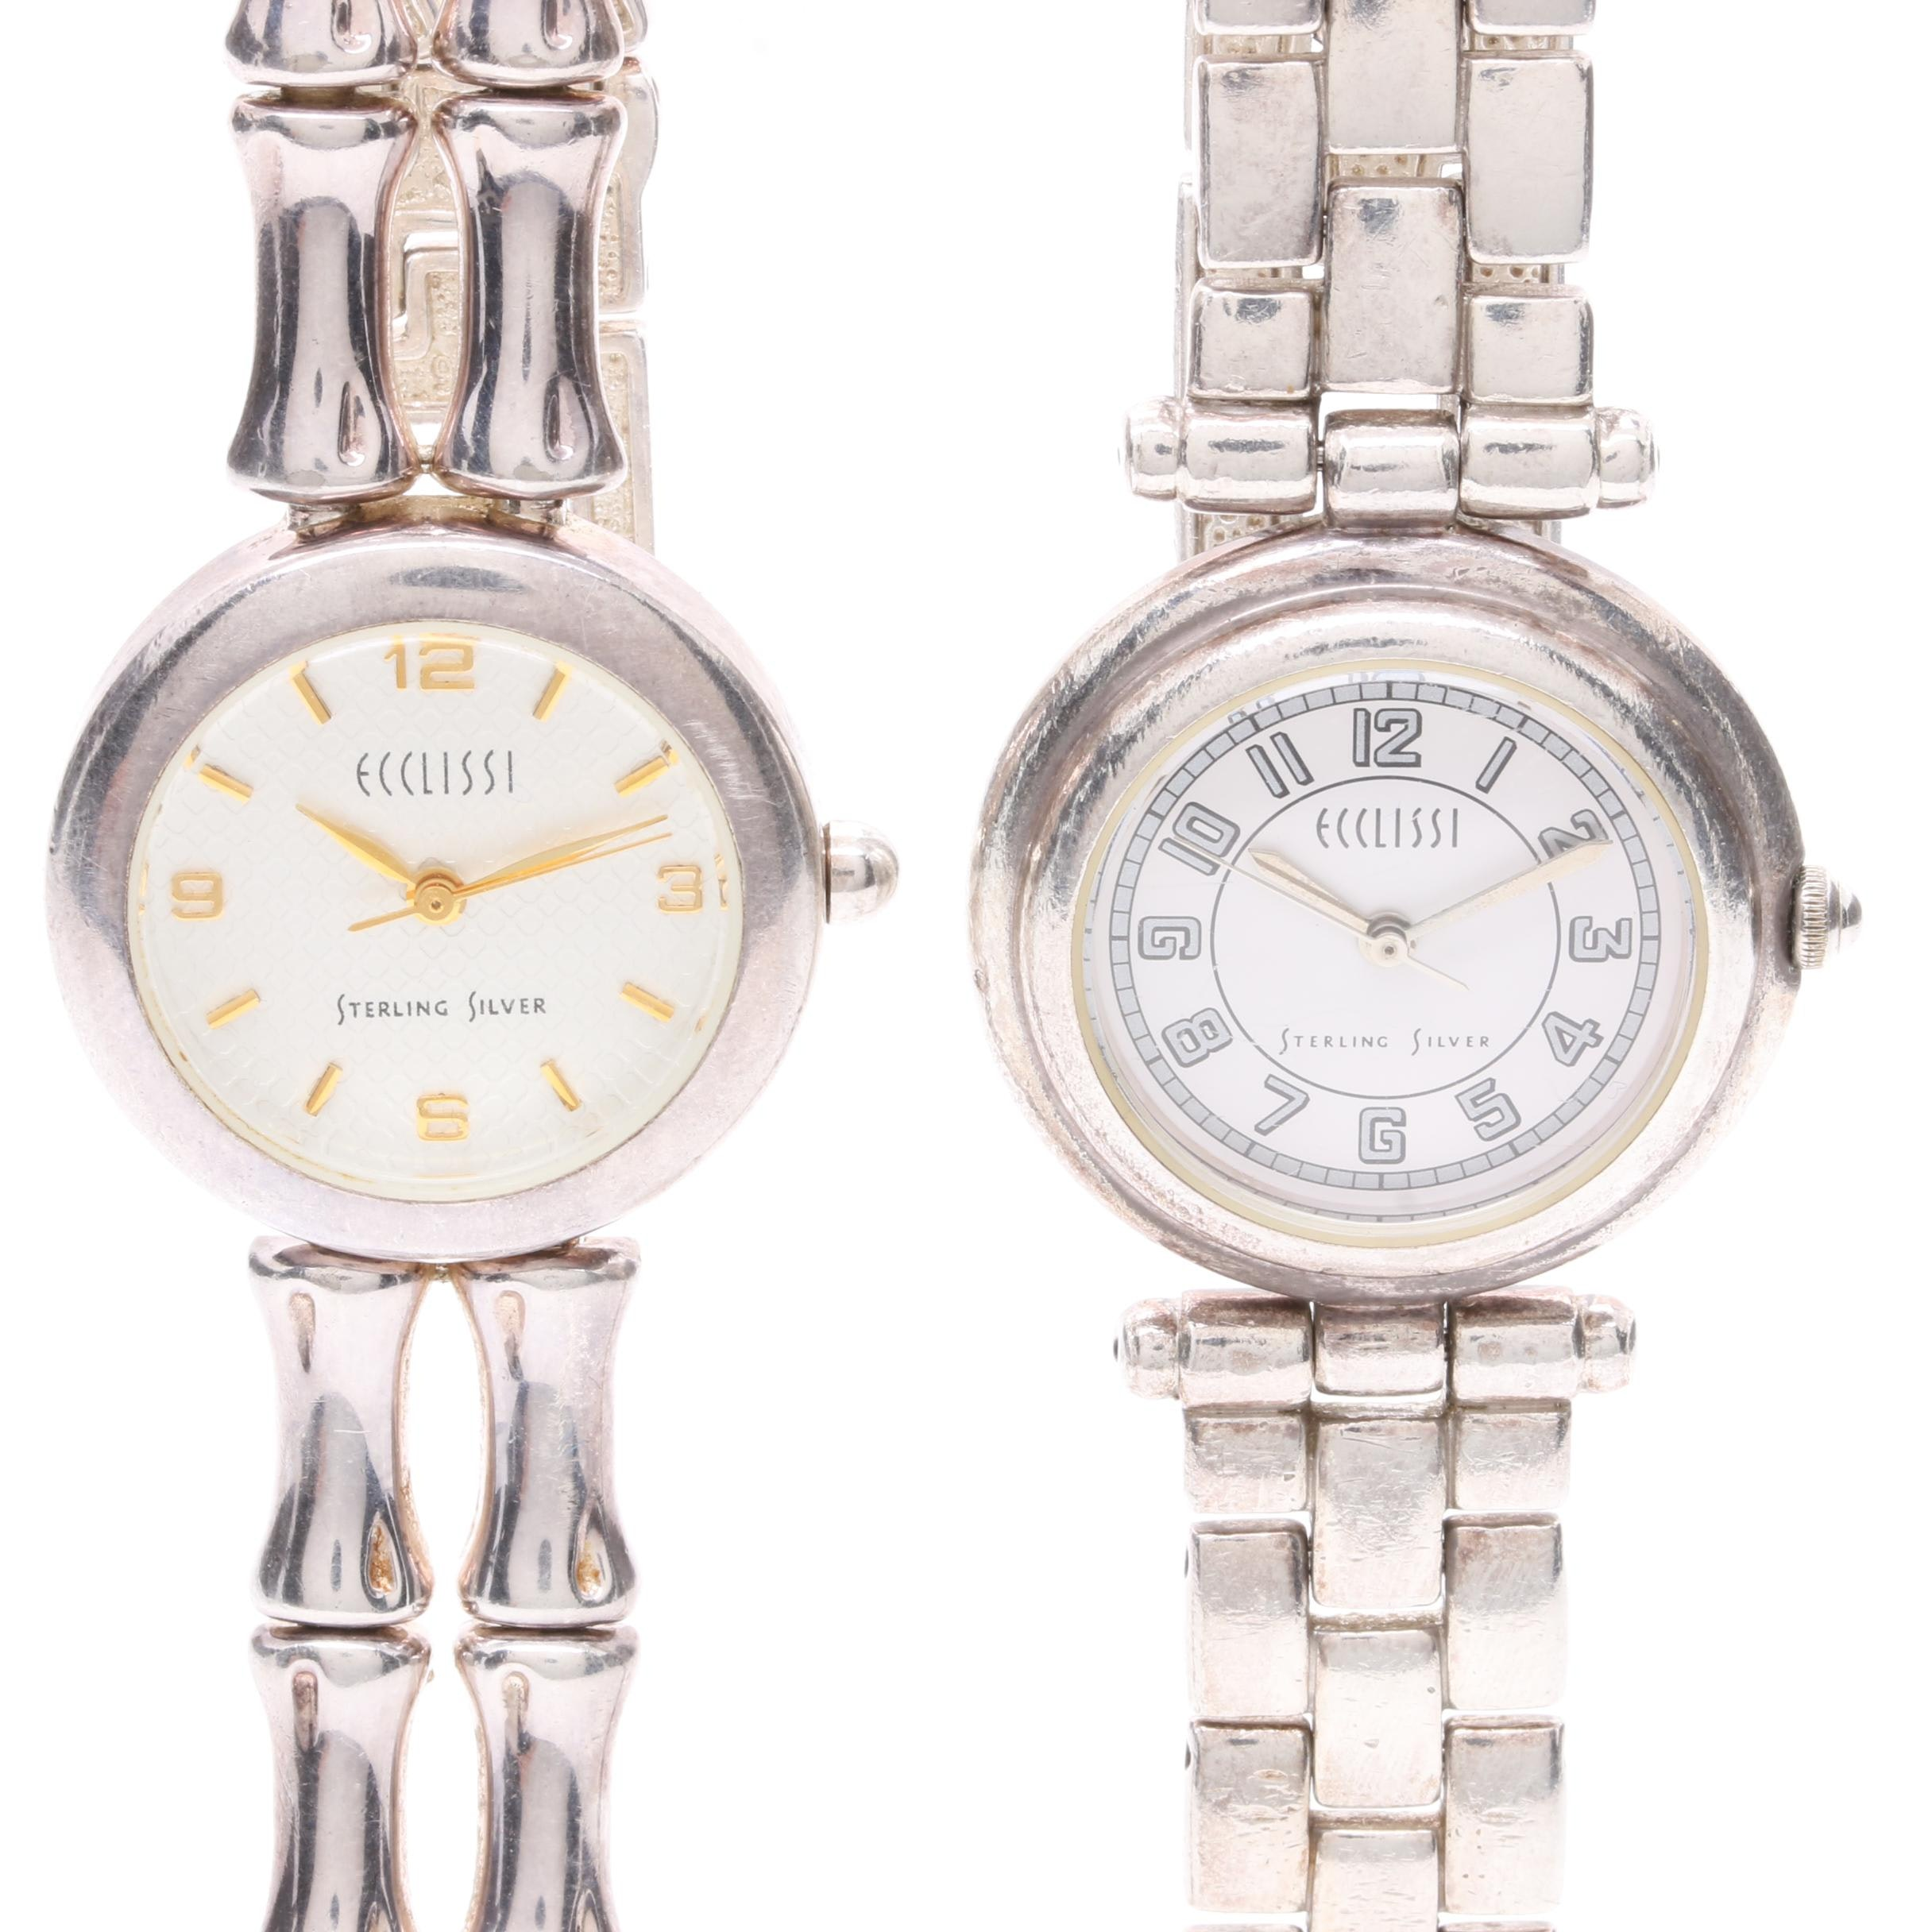 Ecclissi Sterling Silver Analog Watches